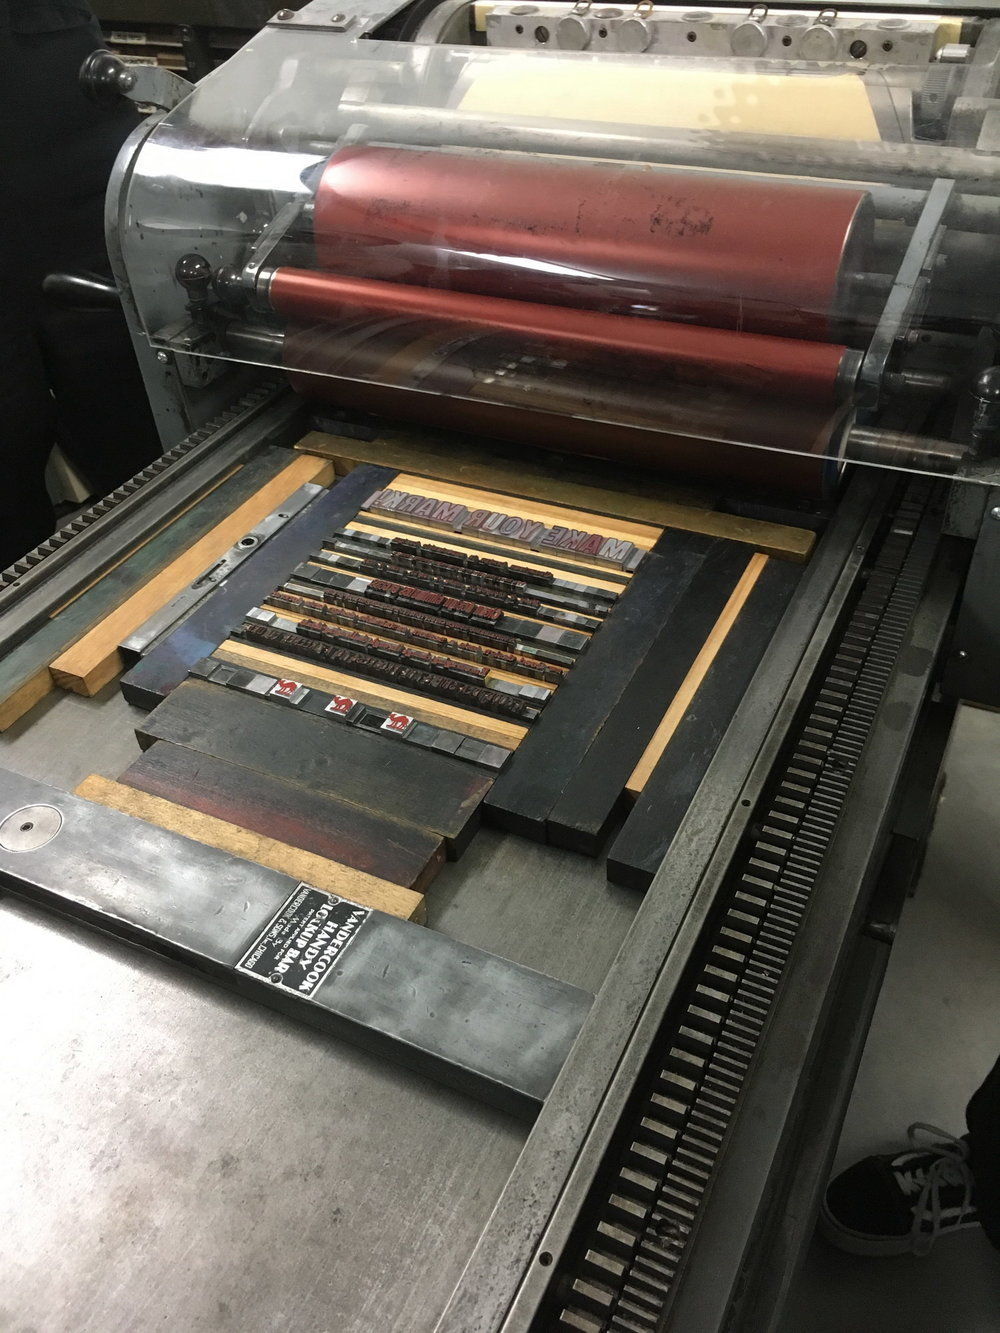 Lines of text assembled on the Vandercook proofing press.